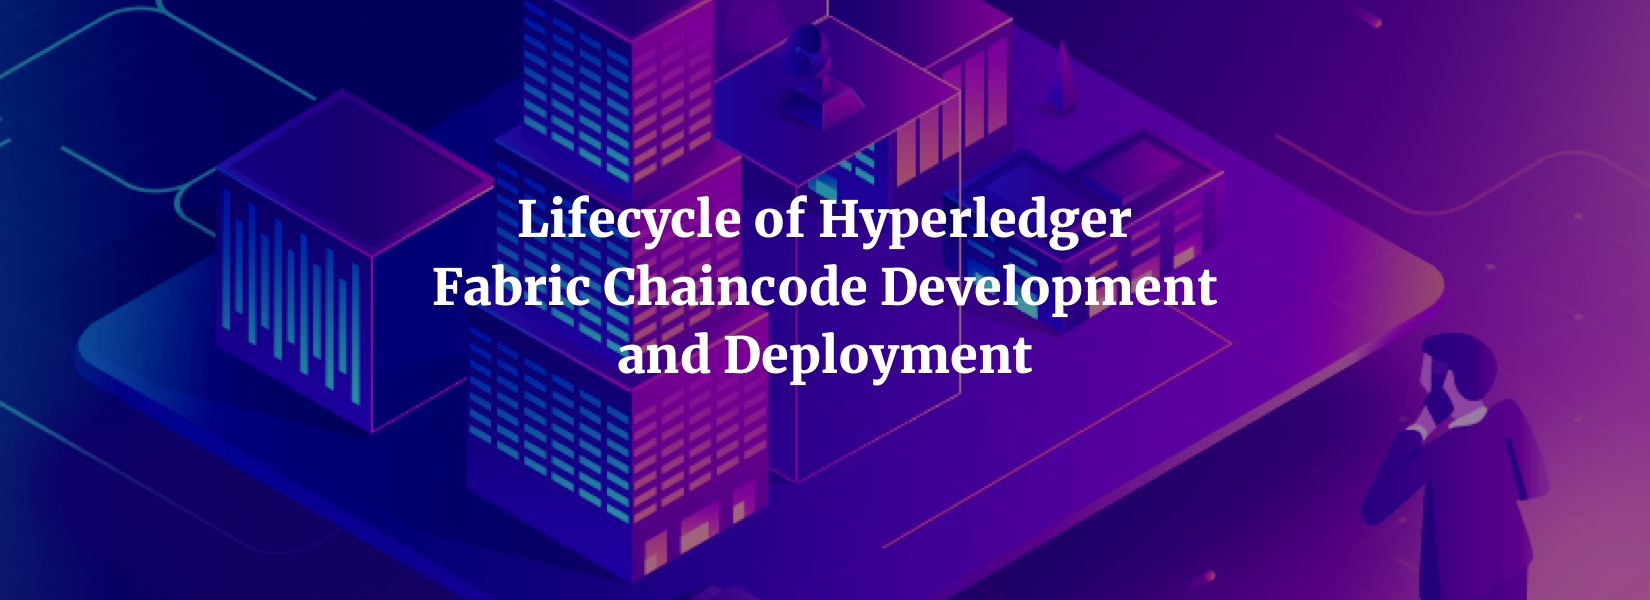 Lifecycle of Hyperledger Fabric Chaincode Development and Deployment